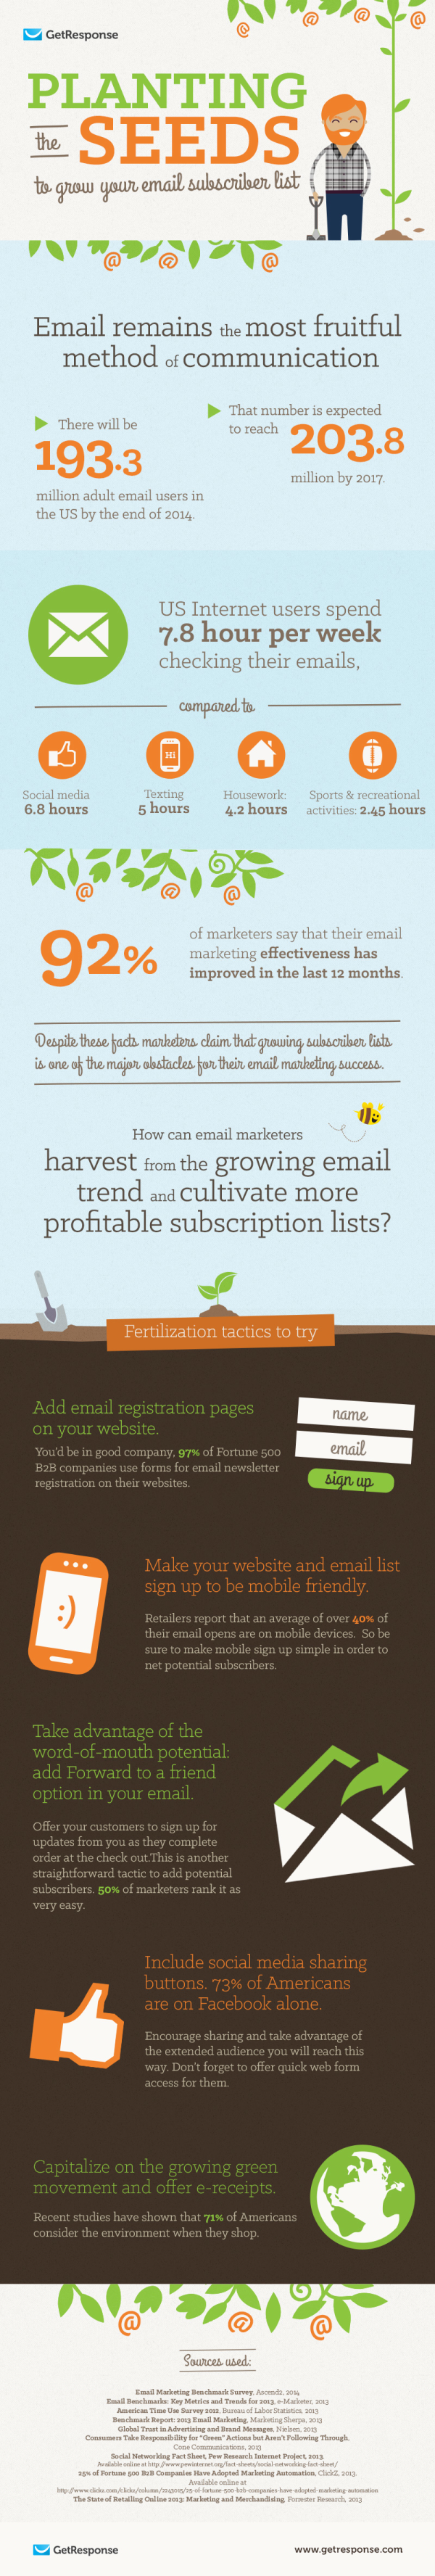 Infographic - Planting The Seeds To Grow Your Email Subscriber List